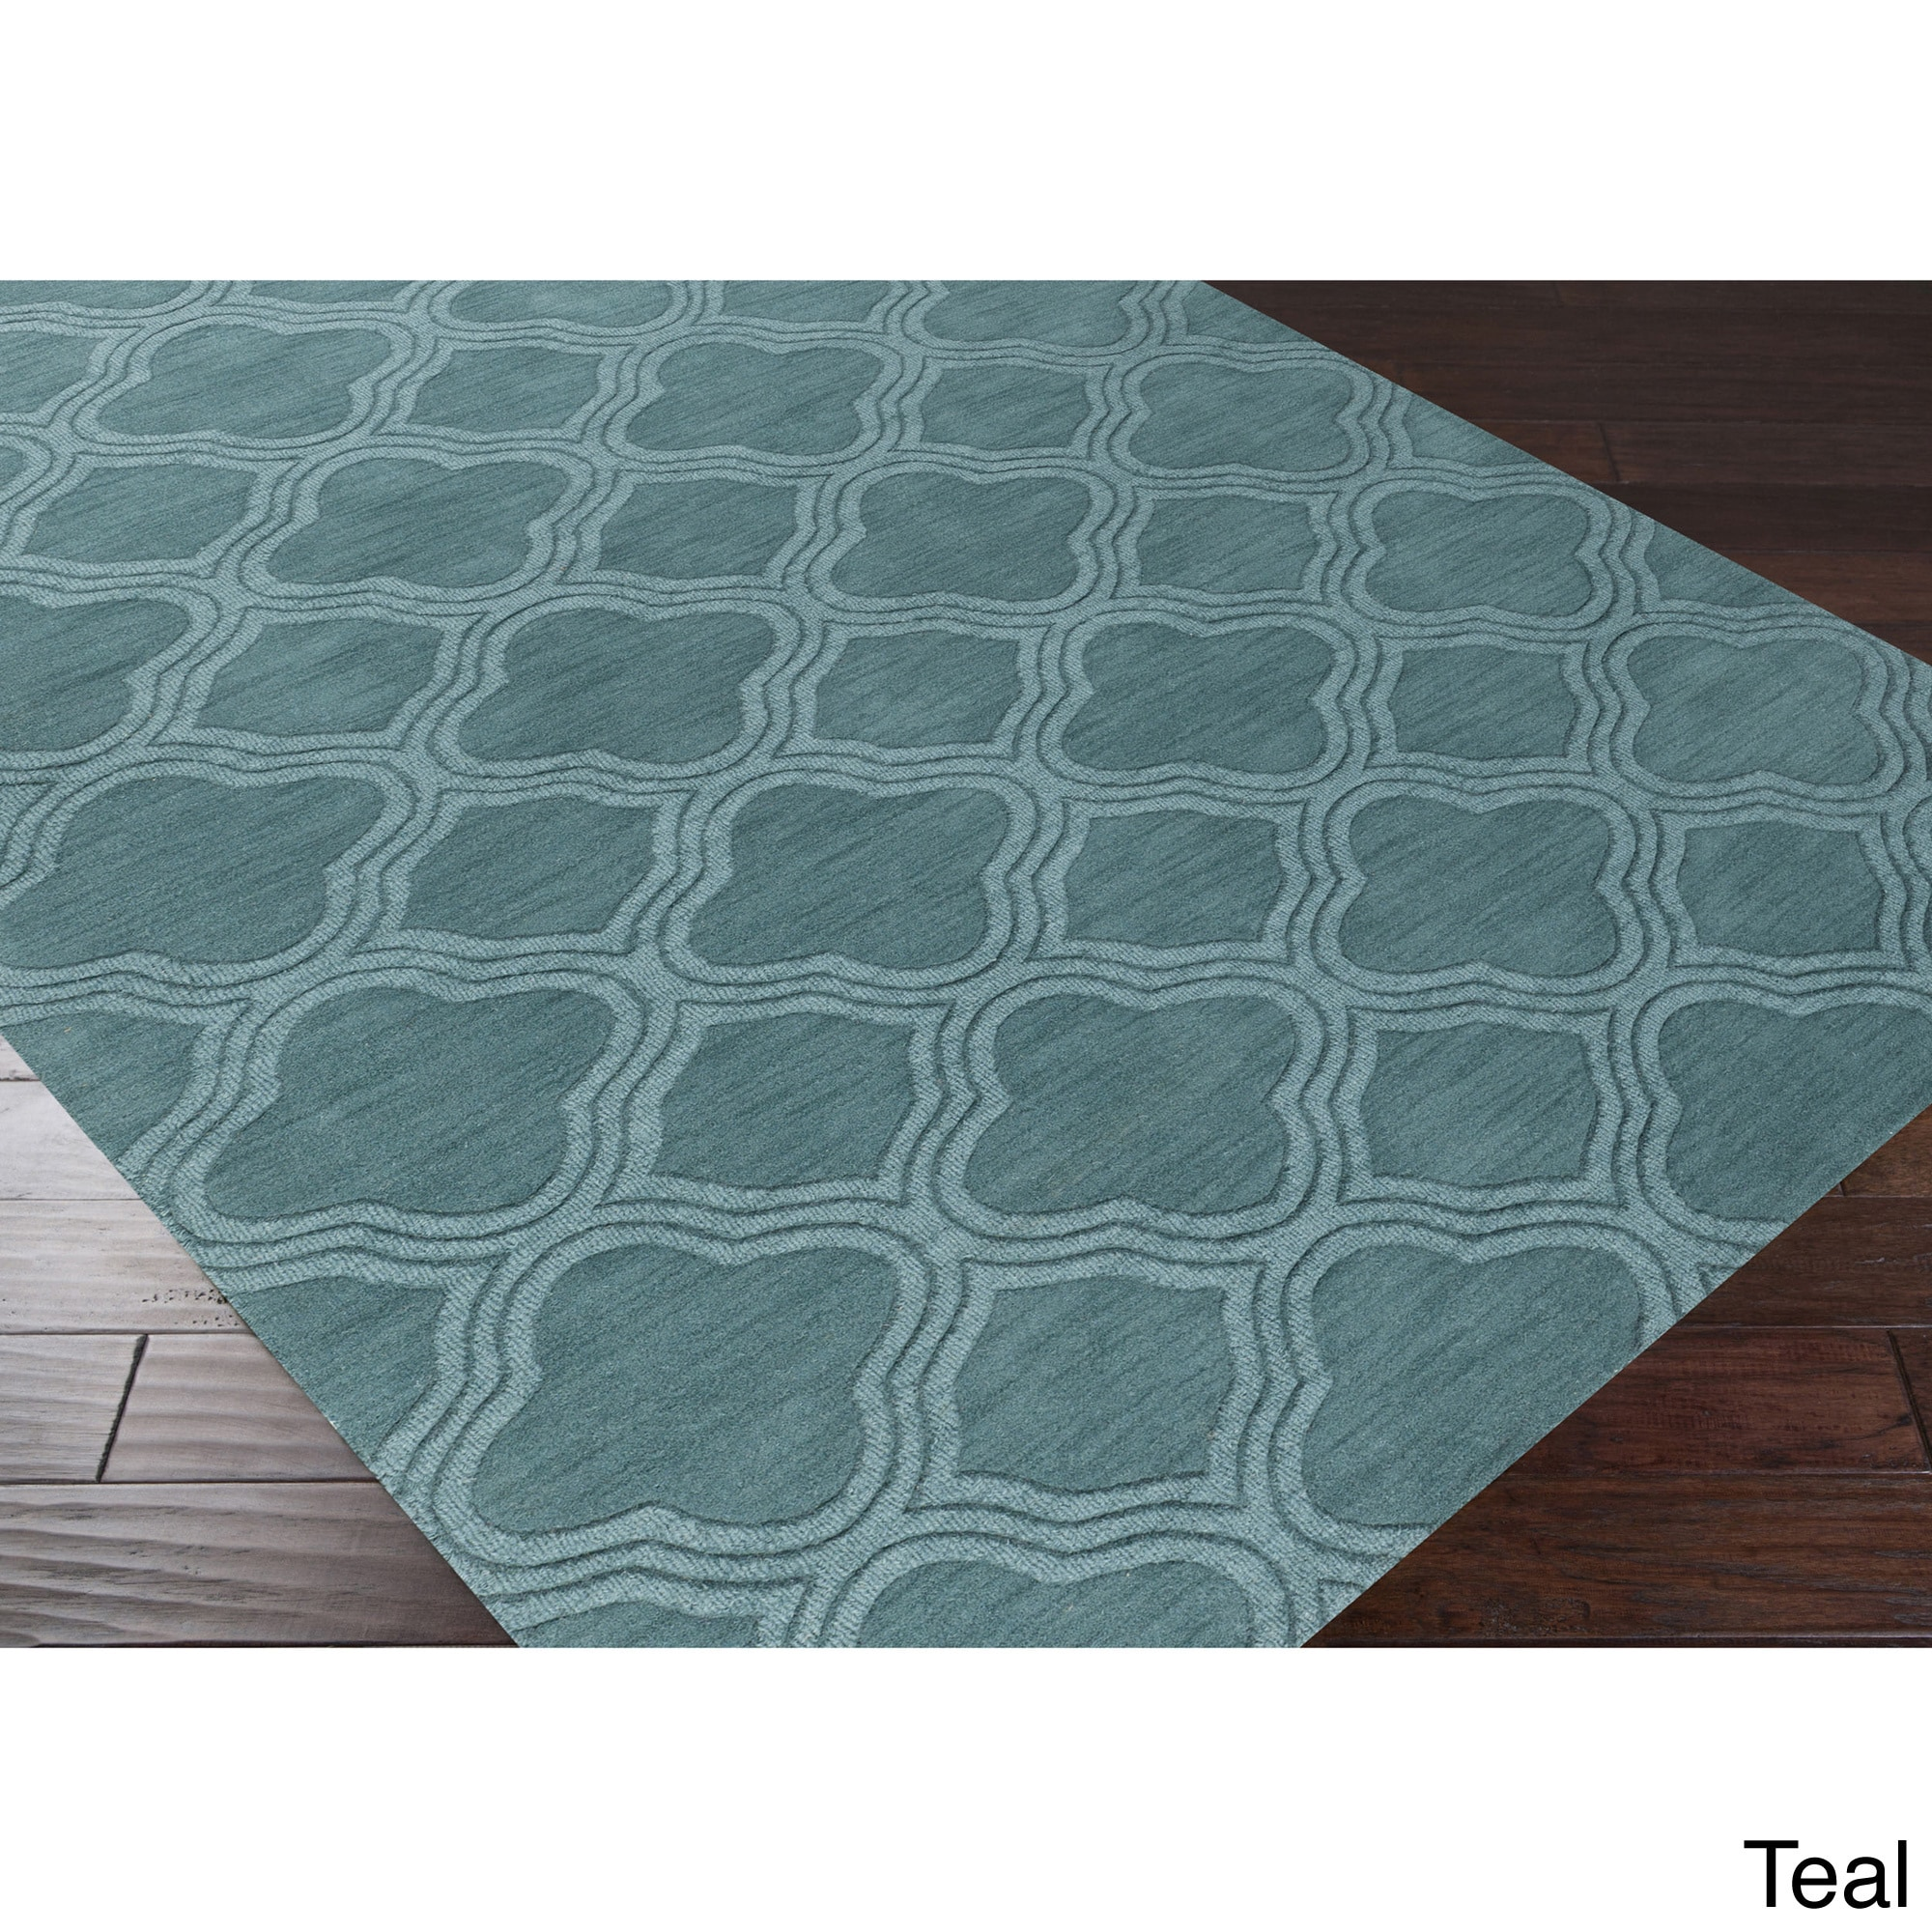 Hand Loomed Rome Casual Solid Tone On Can Trellis Wool Area Rug Free Shipping Today 8869708